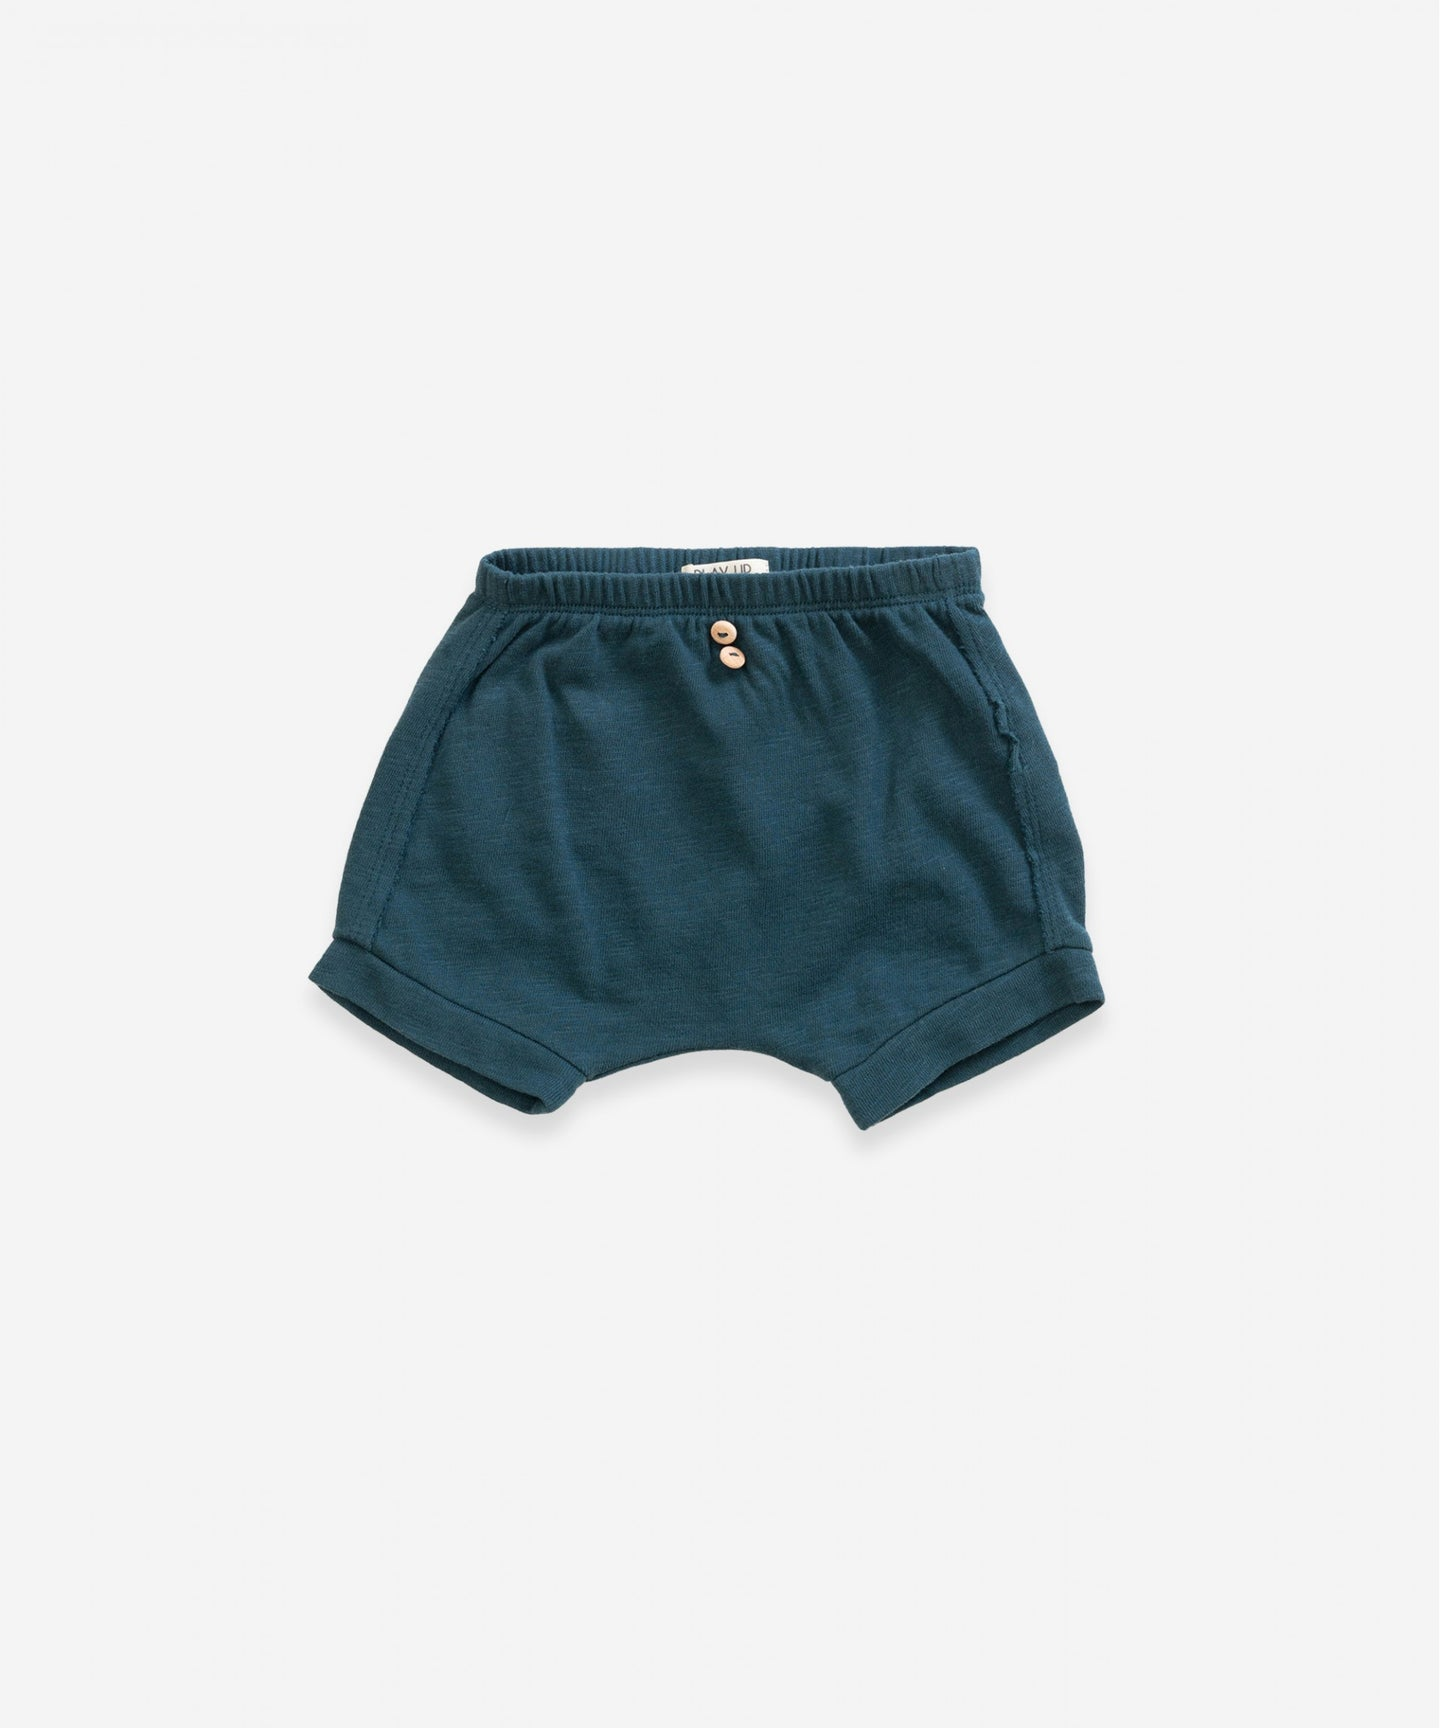 Organic Cotton Shorts With Pocket - Deep